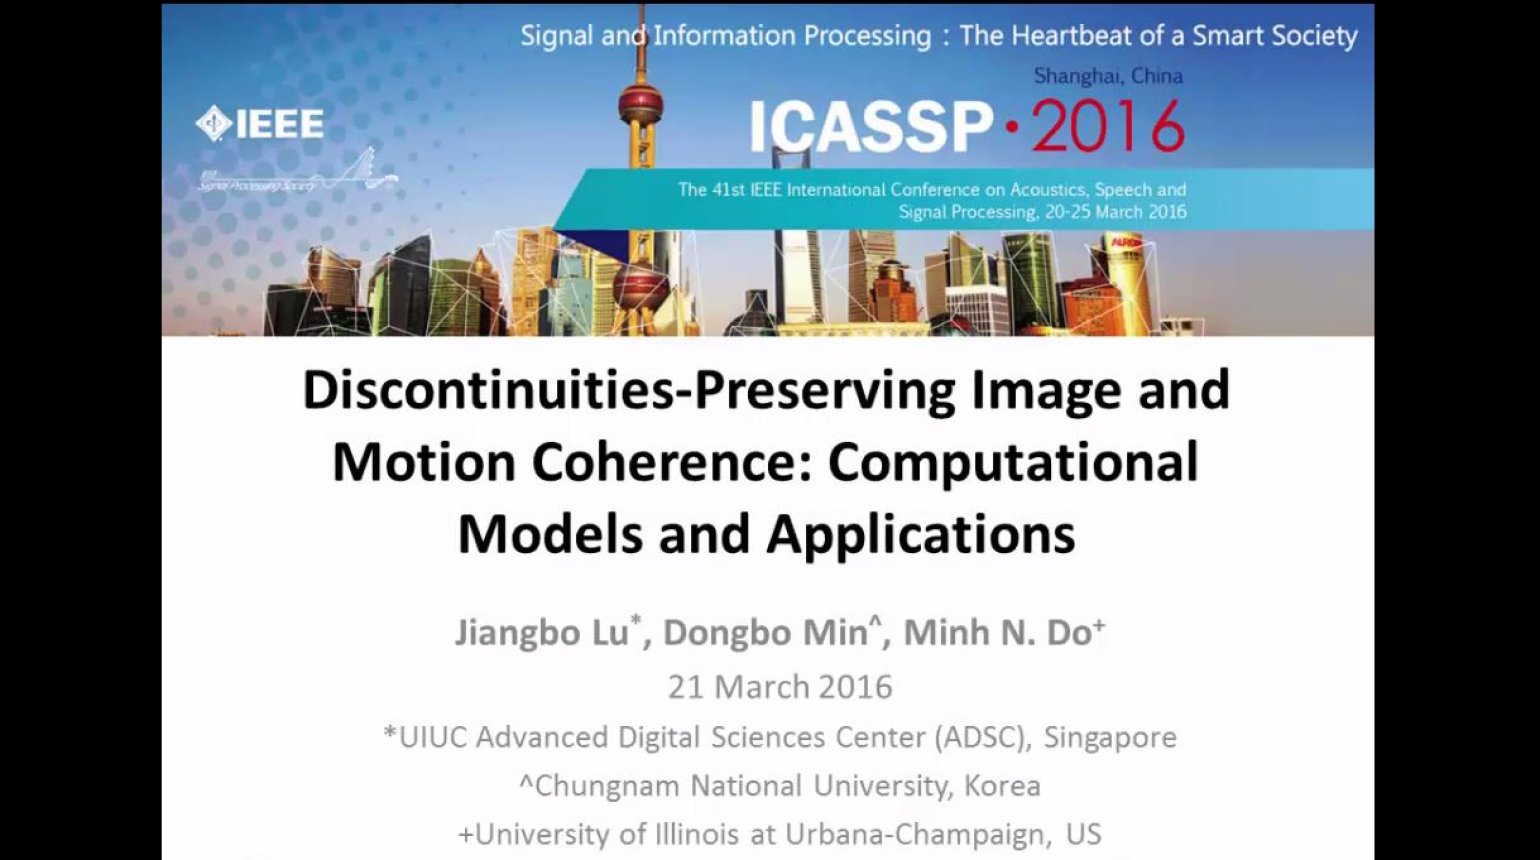 ICASSP 2016 Discontinuities Preserving Image Motion Coherence: Computational Models and Applications